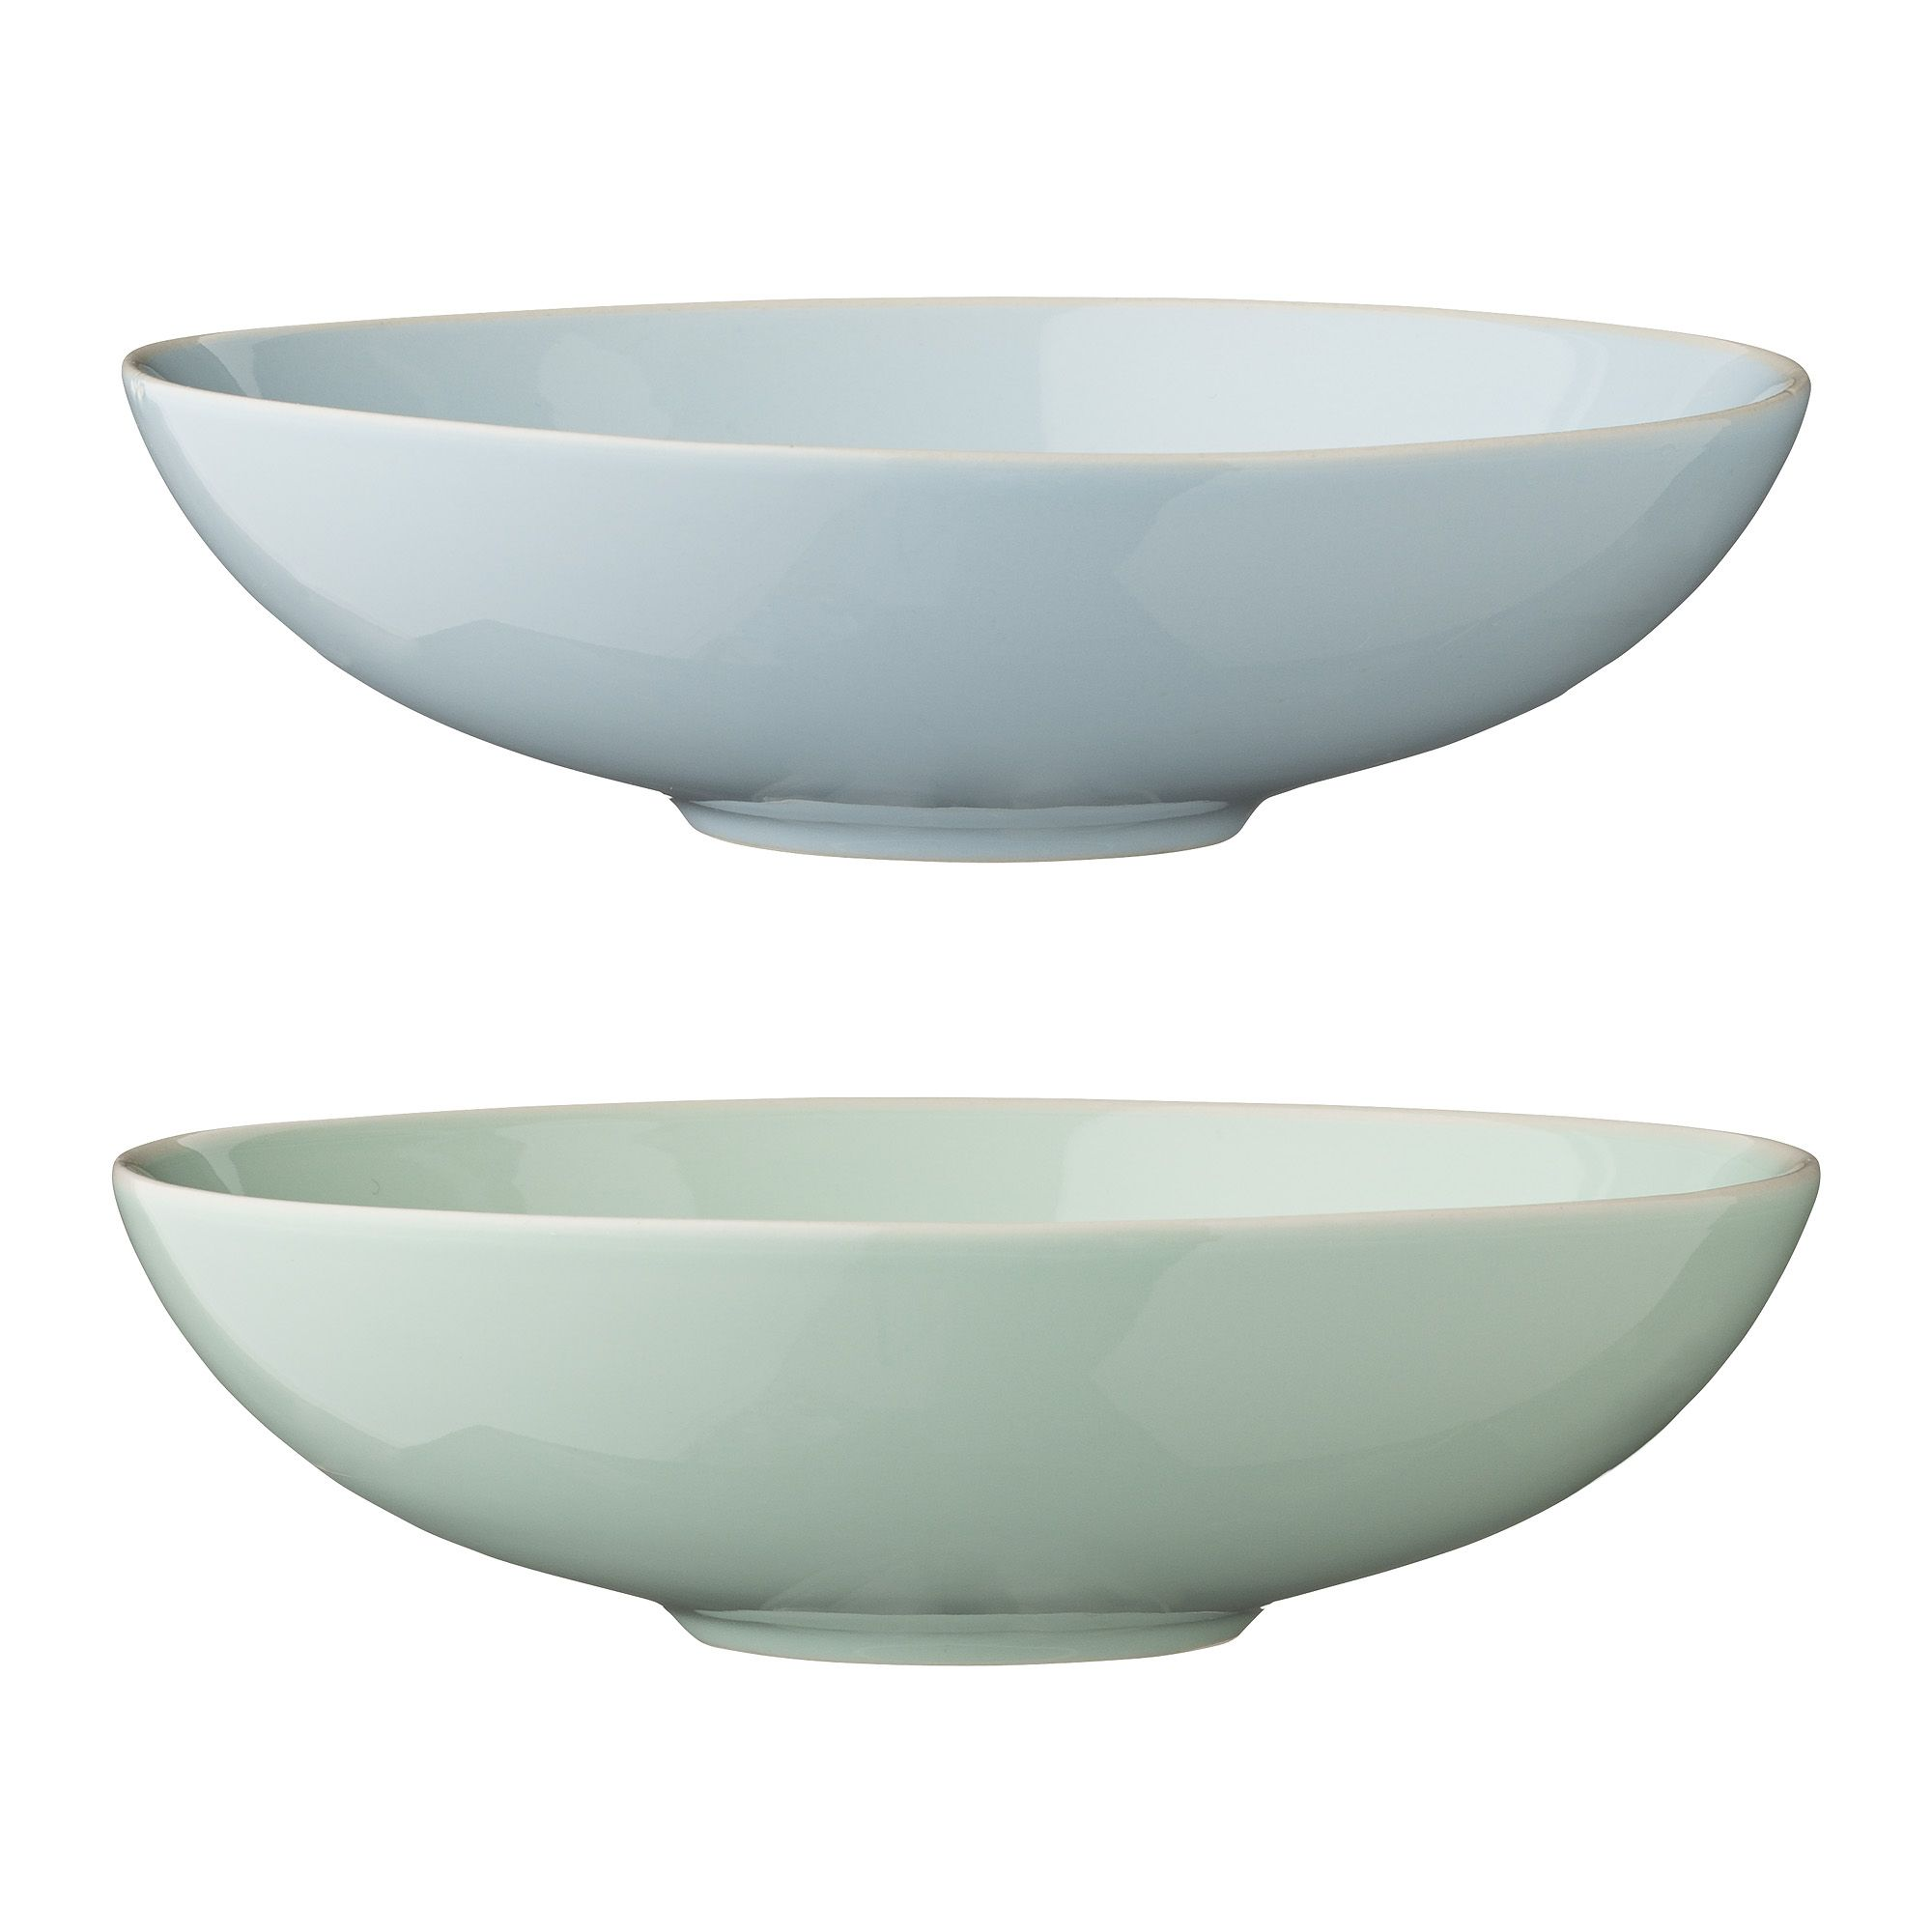 Elegant Olivia bowls by Bloomingville - perfect for salads and soups.